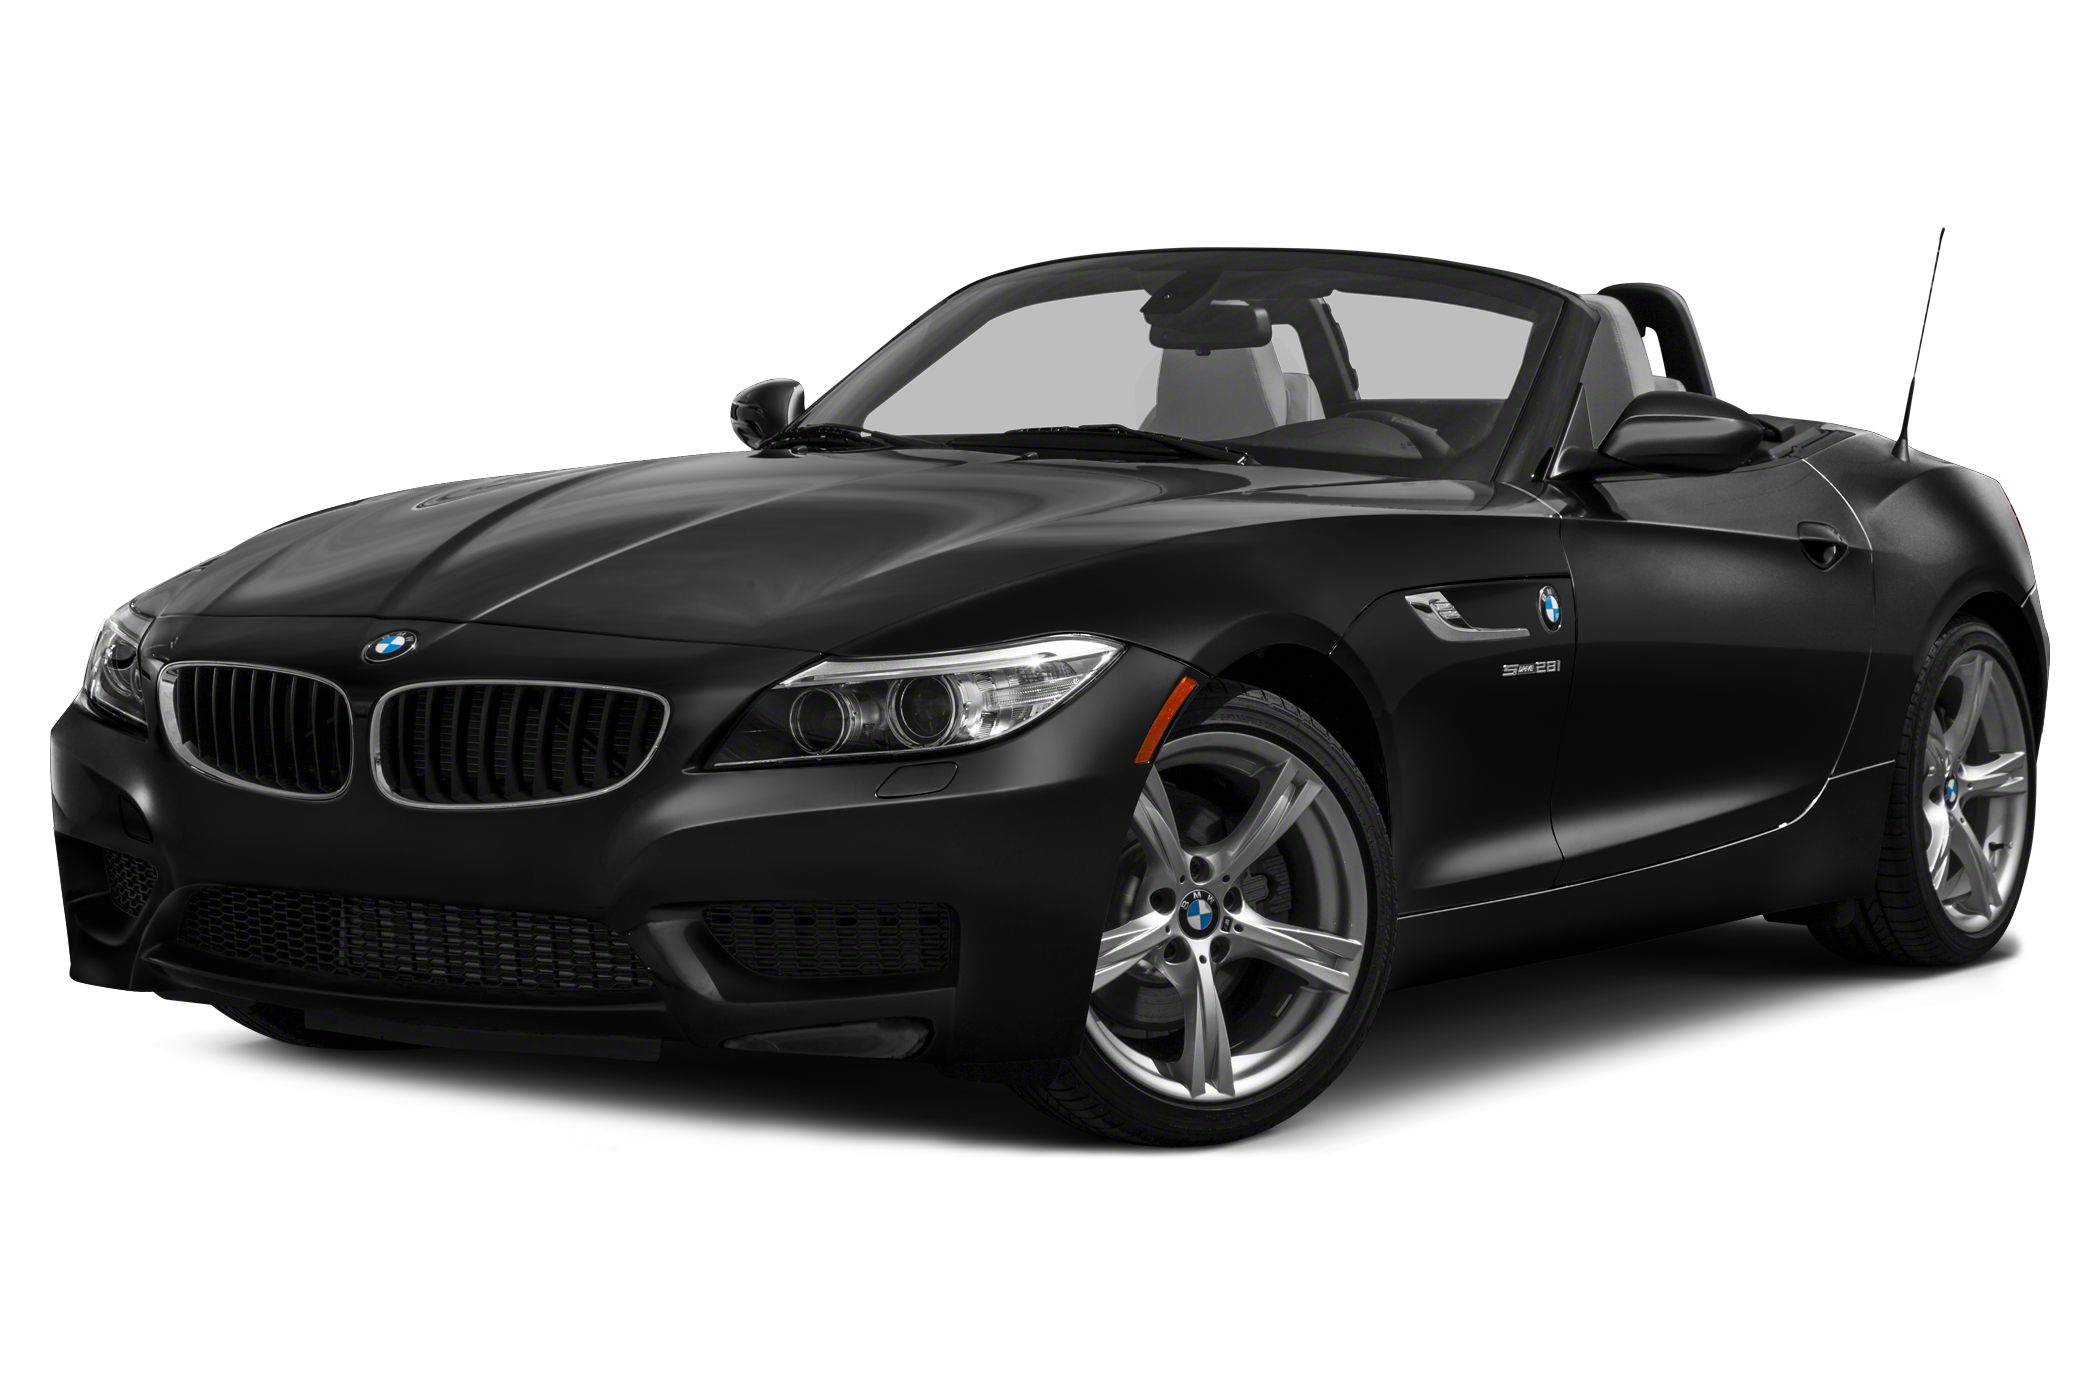 Bmw Z4 News Photos And Buying Information Autoblog